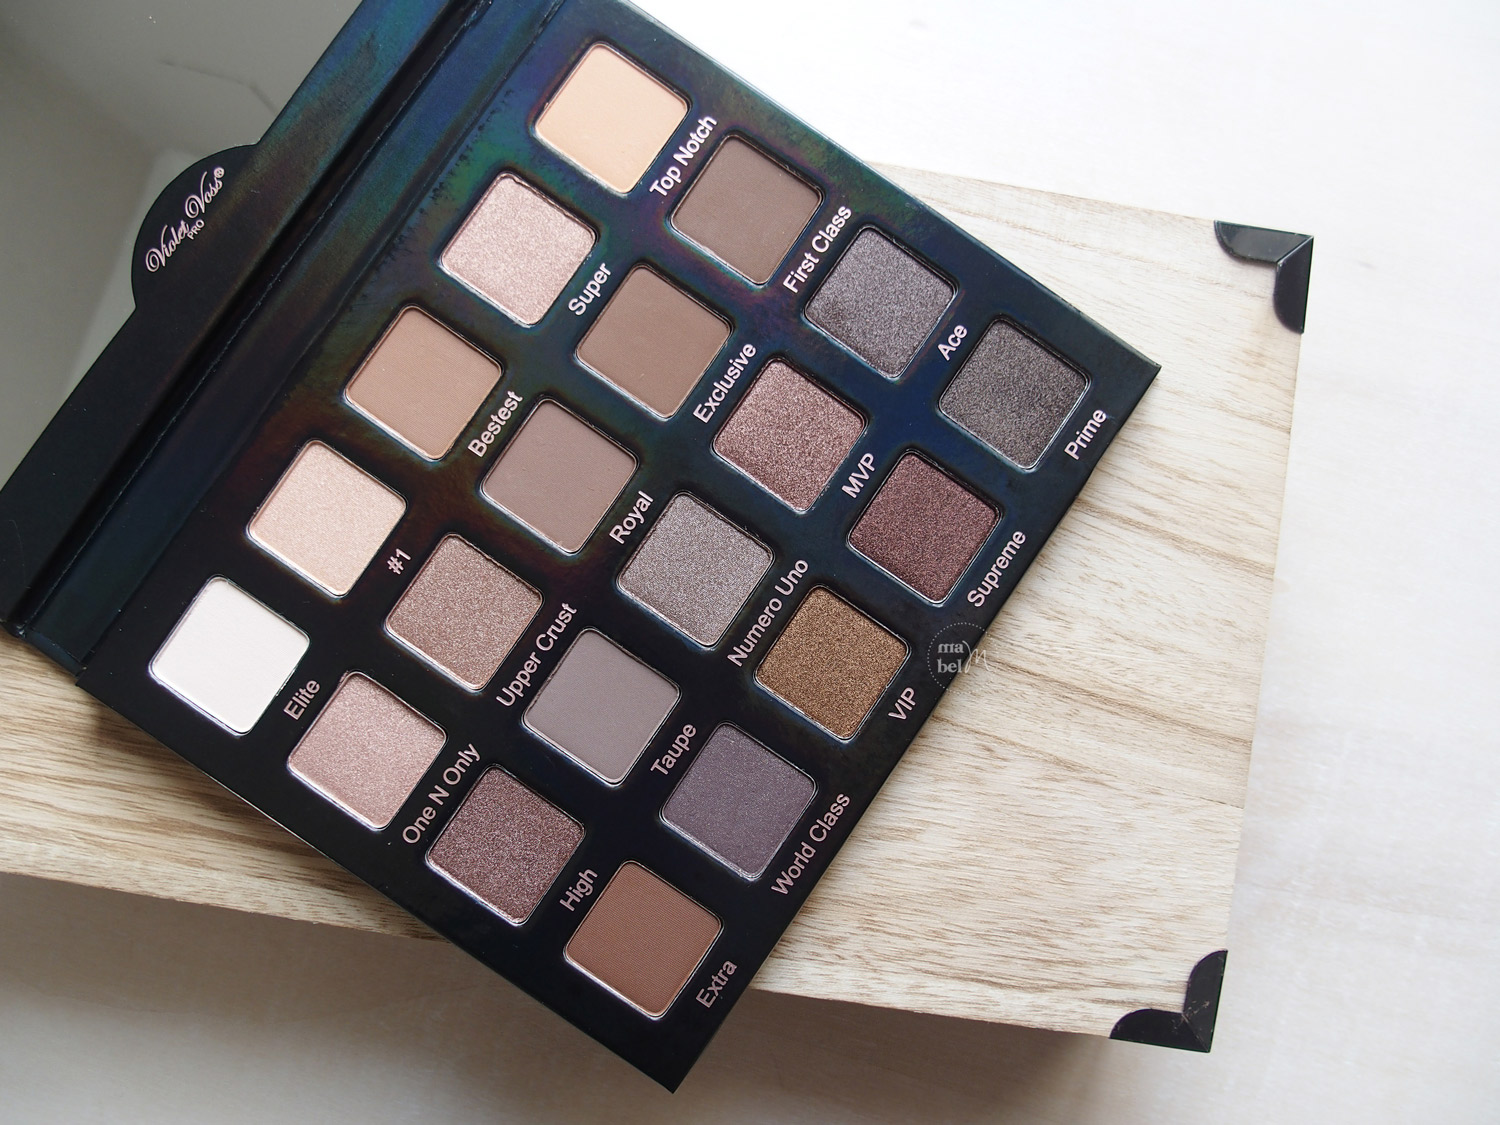 Taupe Notch Palette by Violet Voss Cosmetics #14